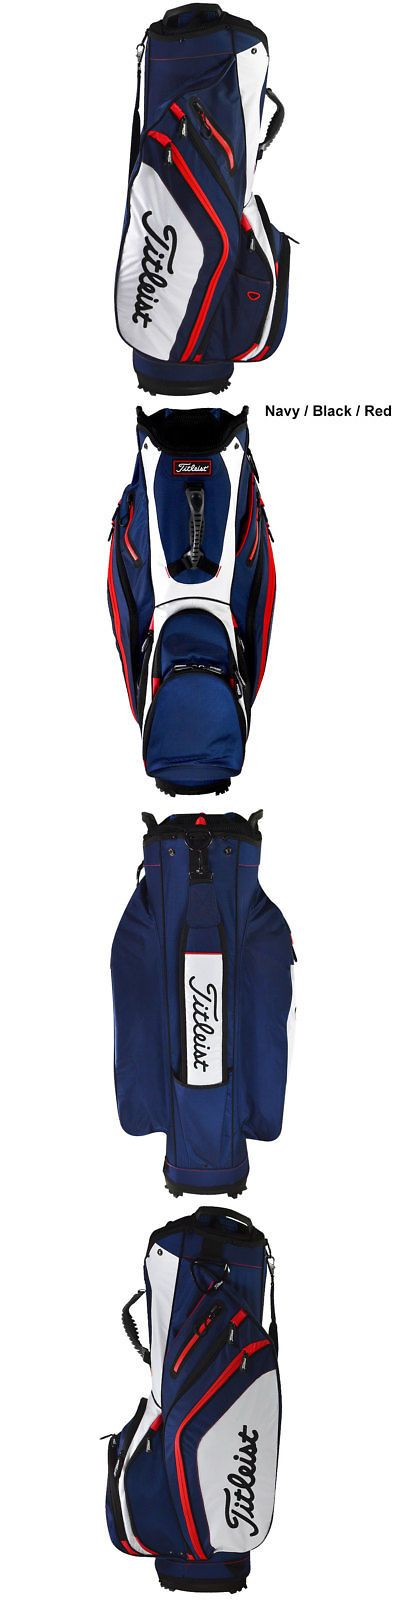 Golf Club Bags 30109: New Titleist Golf 2016 Lightweight Cart Bag- Navy Black Red Tb6ct5-416 -> BUY IT NOW ONLY: $129.99 on eBay!